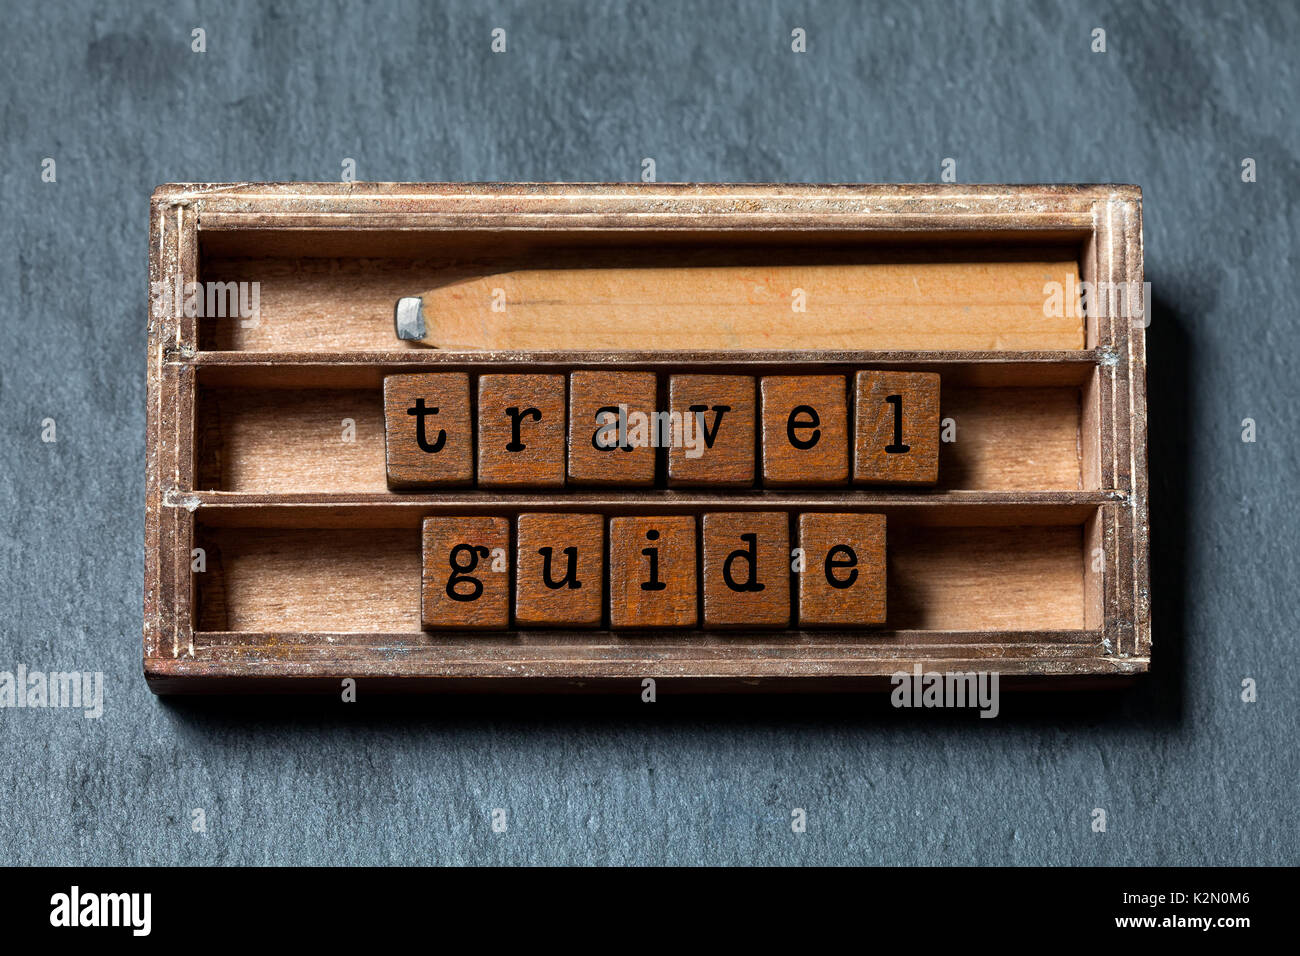 Travel guide concept. Vintage box, wooden cubes phrase with old style letters, retro pencil. Gray stone textured background. Close-up, up view, soft focus. - Stock Image